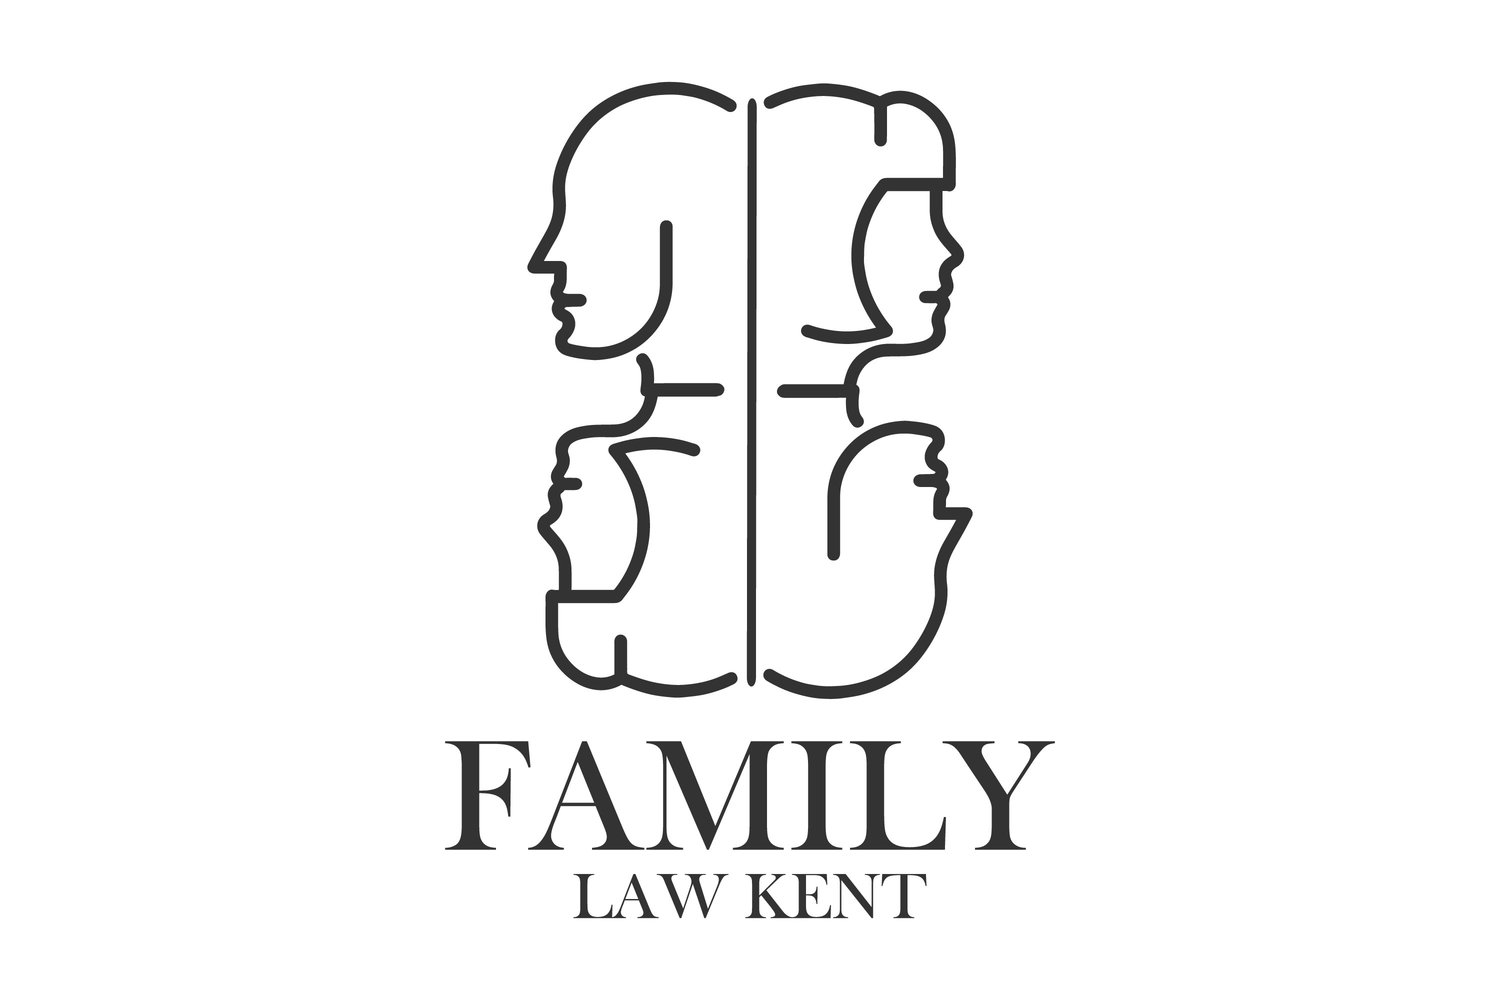 Family Law Kent